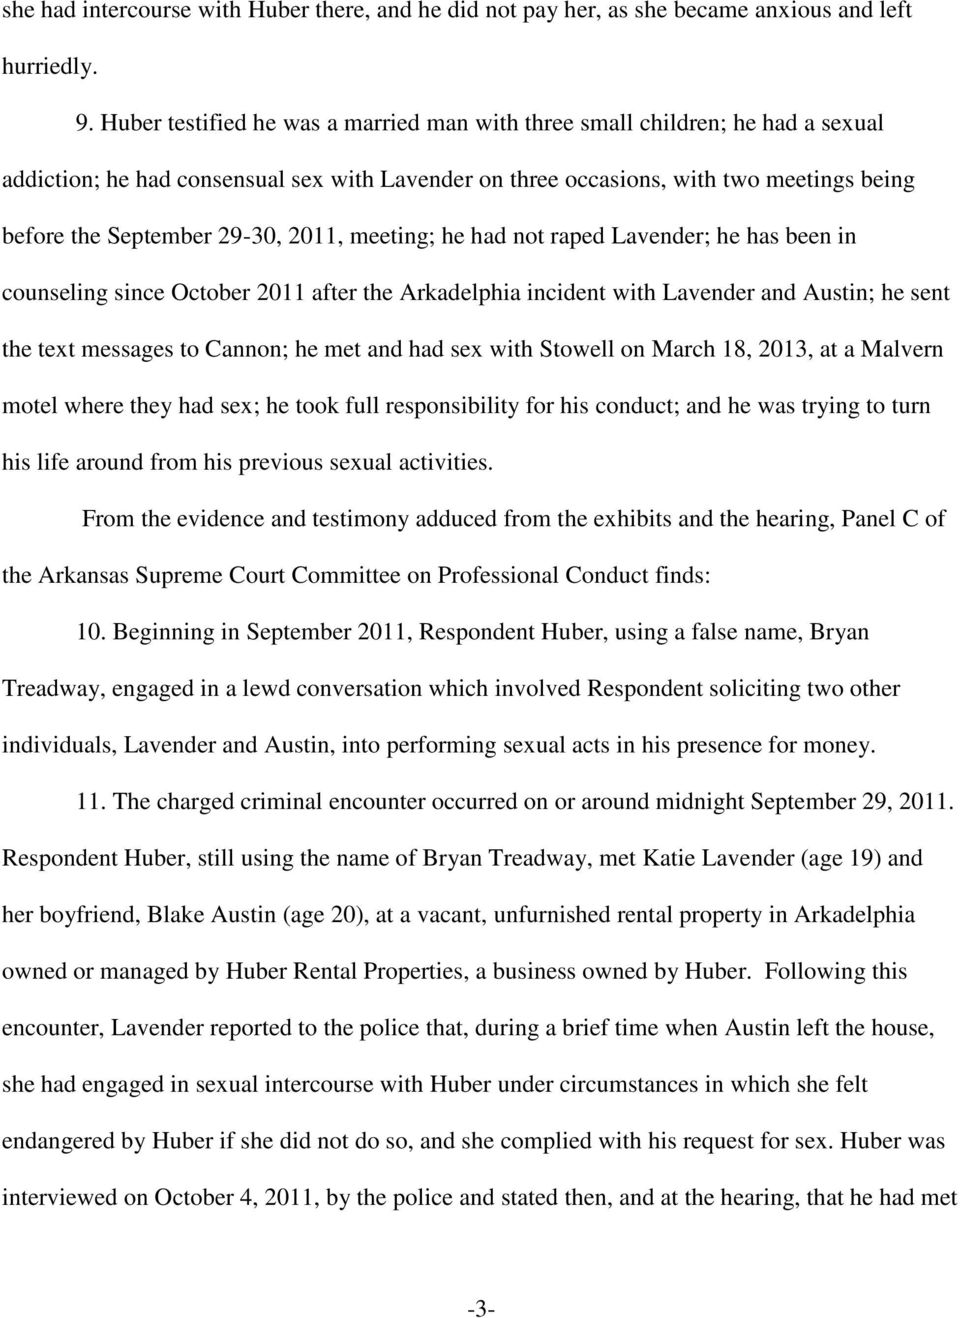 2011, meeting; he had not raped Lavender; he has been in counseling since October 2011 after the Arkadelphia incident with Lavender and Austin; he sent the text messages to Cannon; he met and had sex